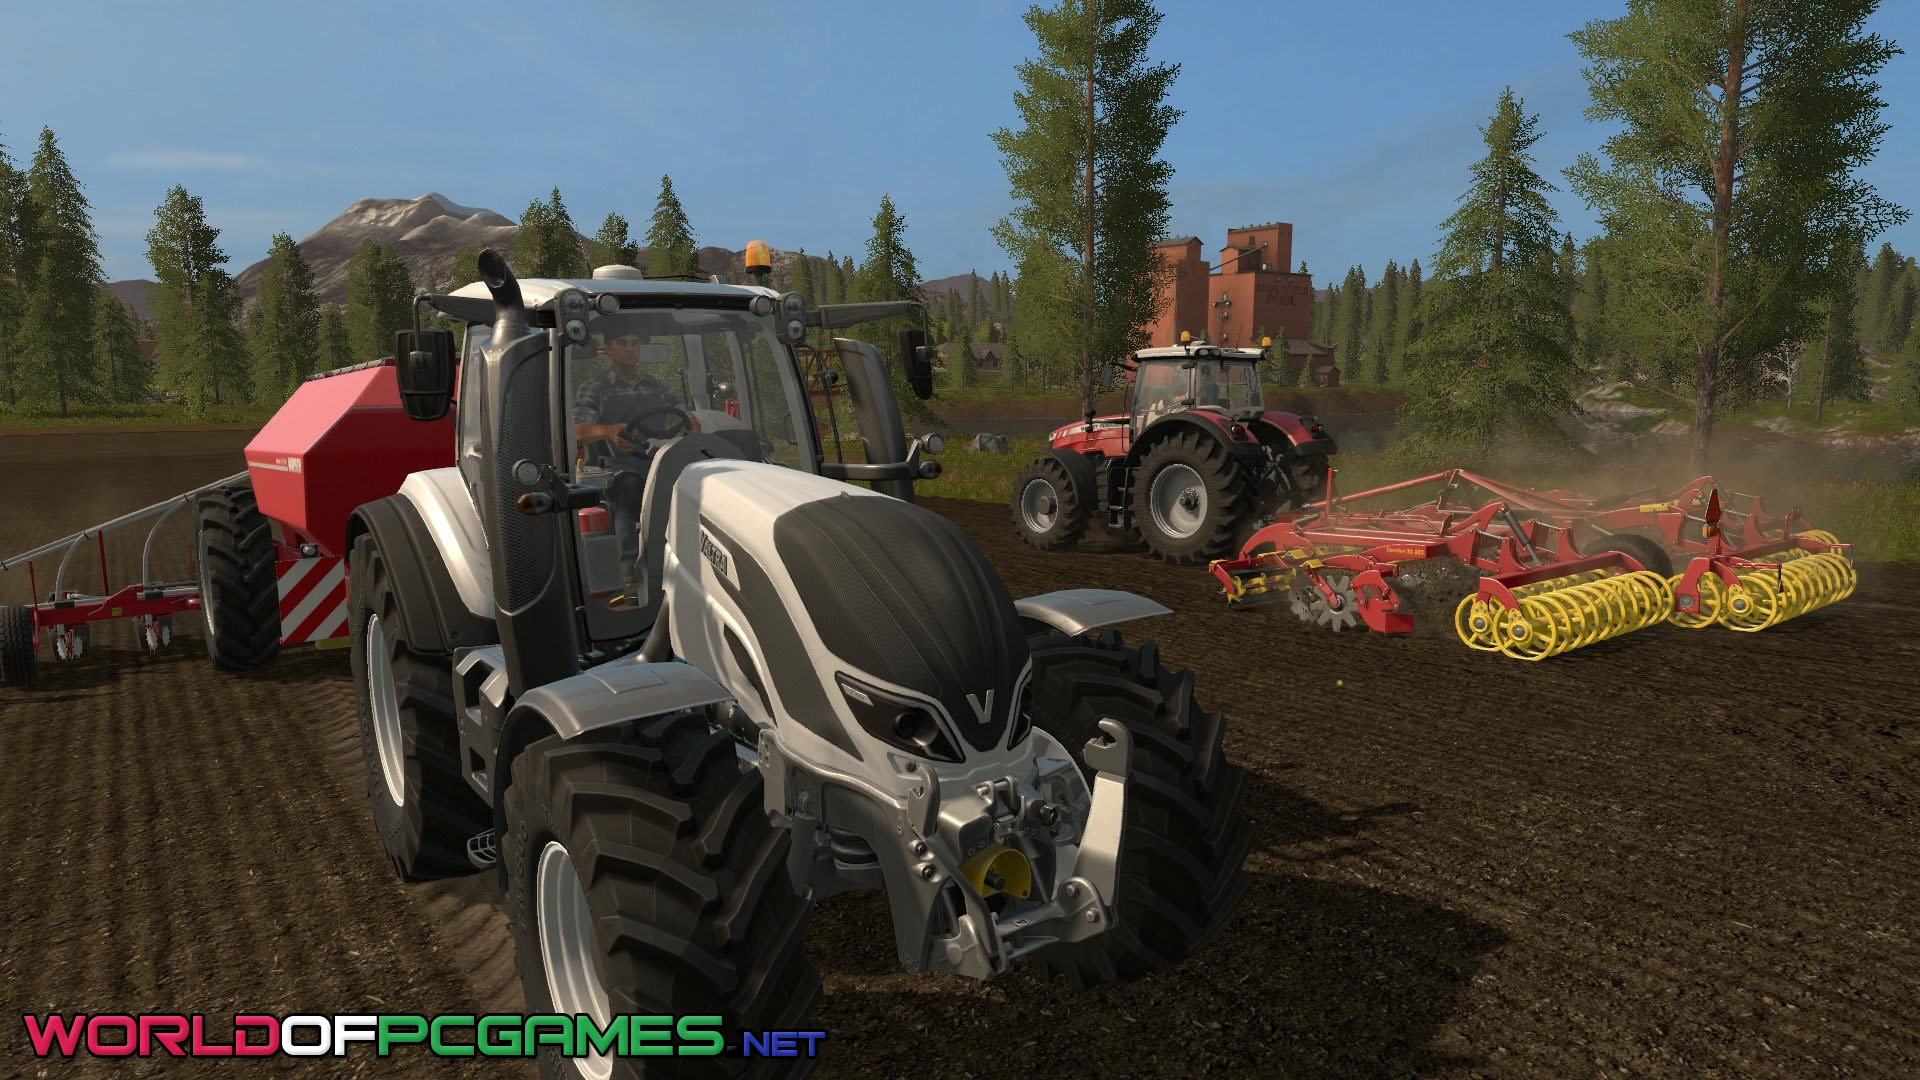 Farming Simulator 2017 Free Download By Worldofpcgames.net 2 - Farming Simulator 17 Download Free